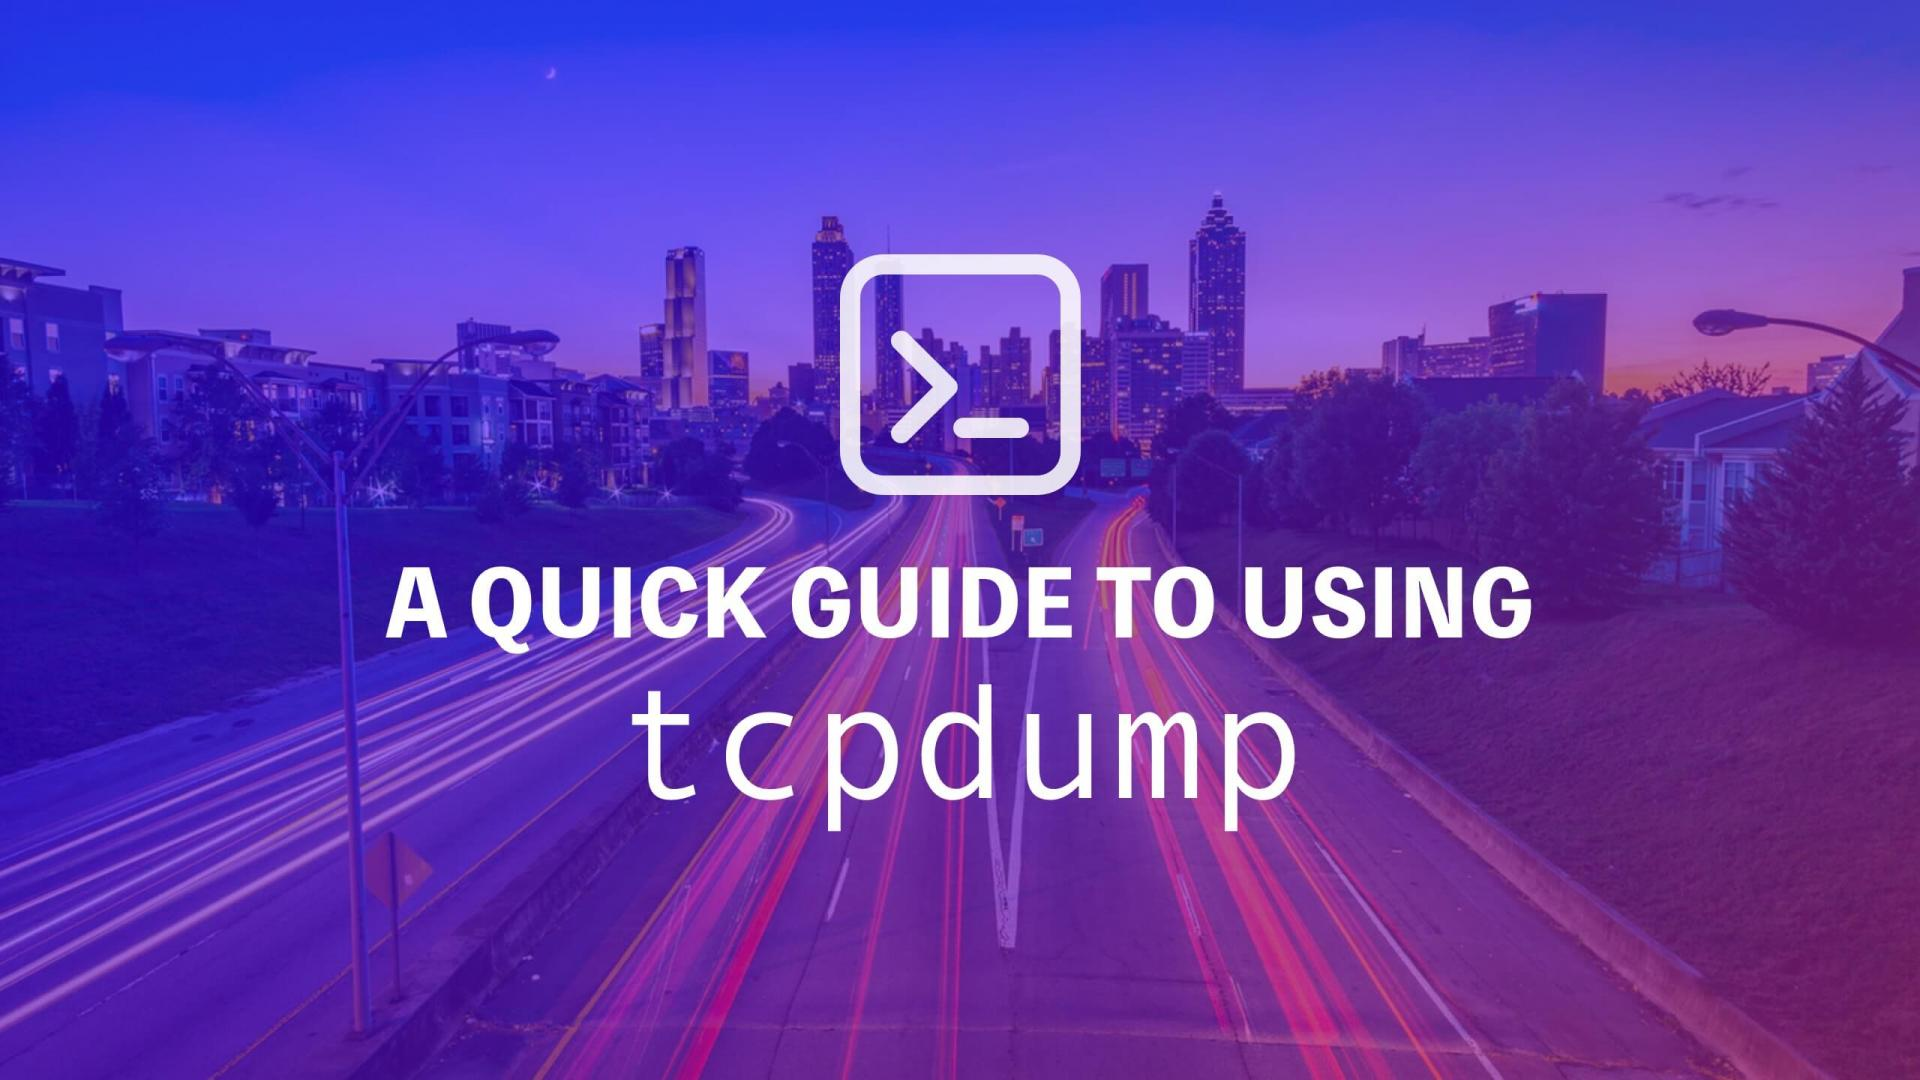 A Quick Guide to Using tcpdump